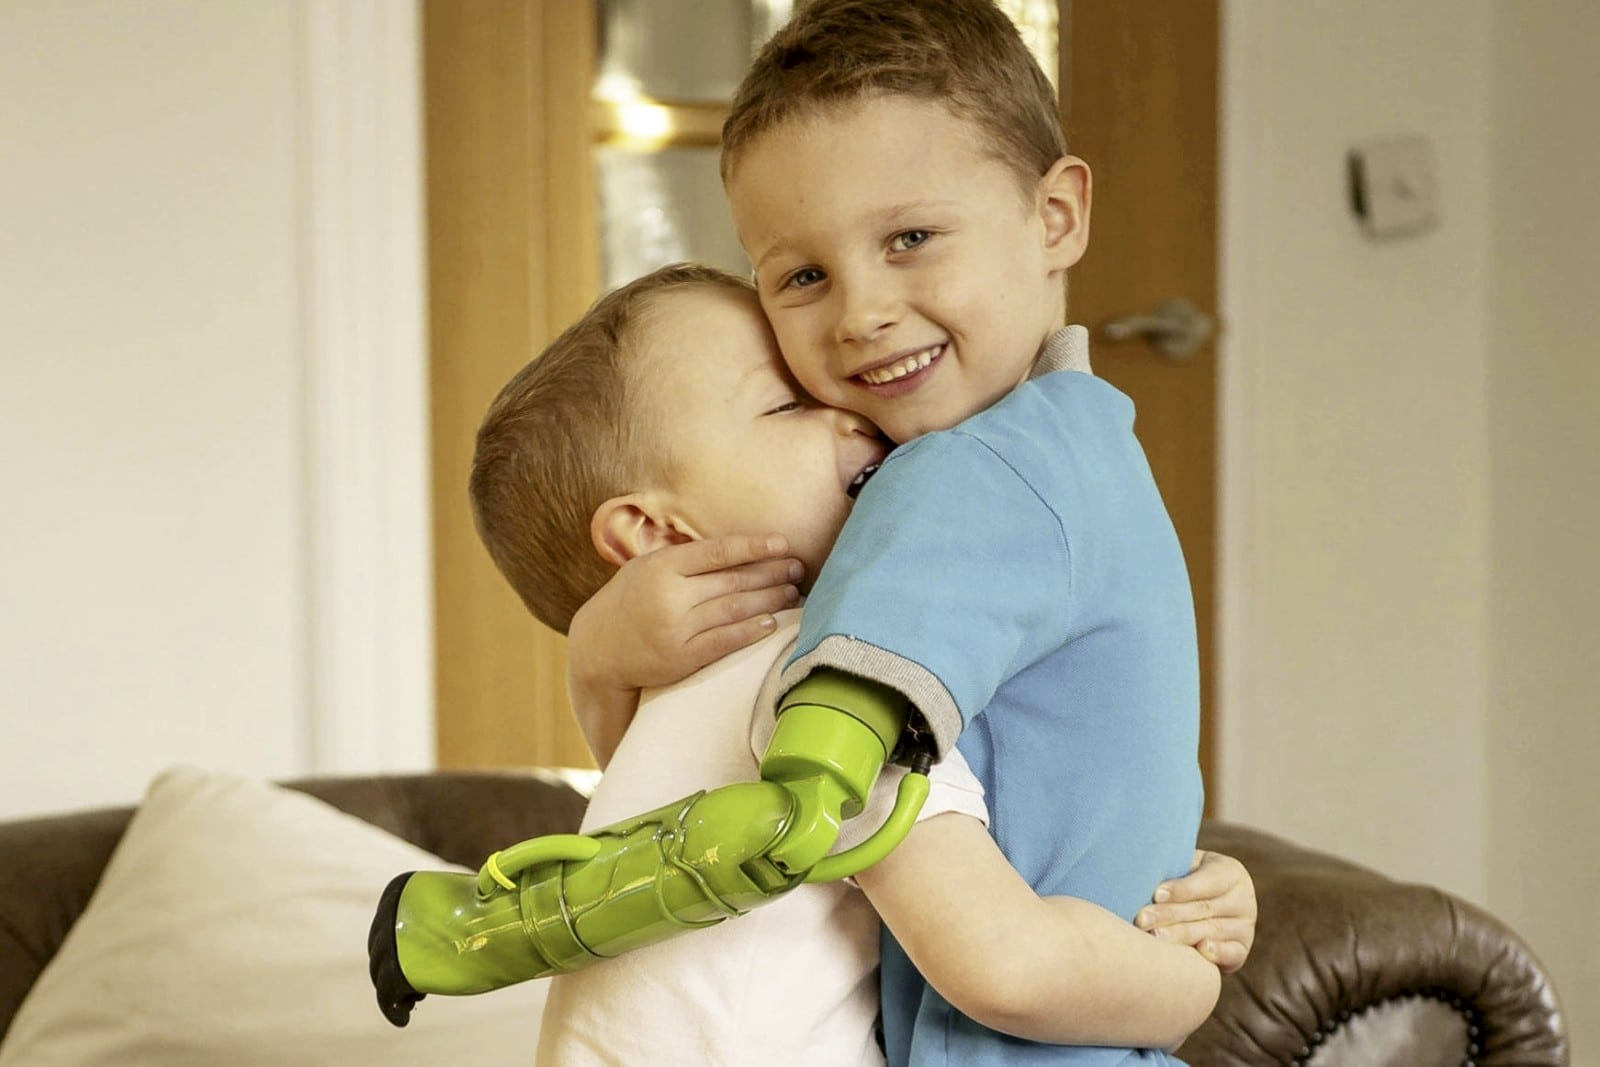 Five-Year-Old Can Finally Give His Little Brother A Hug After Being The First Child In The UK To Have A Functioning Prosthetic Arm Fixed ABOVE The Elbow